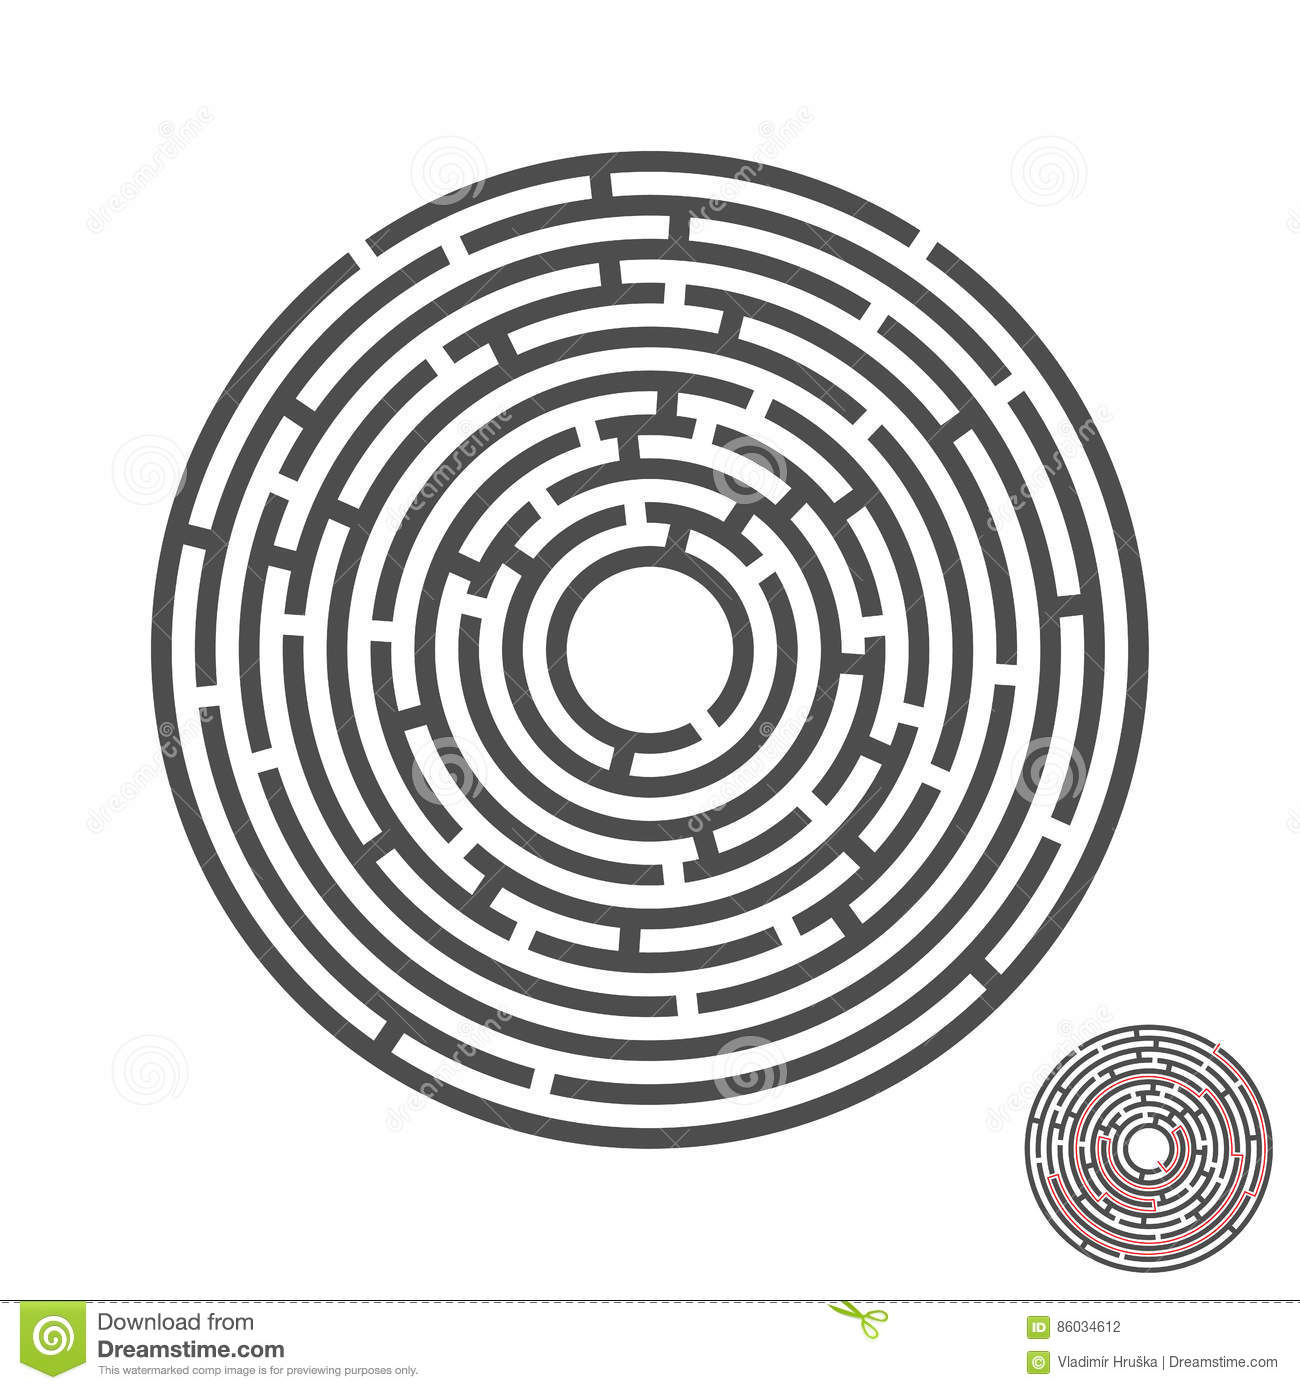 Escape circle labyrinth with entry and exit.vector game maze puzzle with solution.Num.02